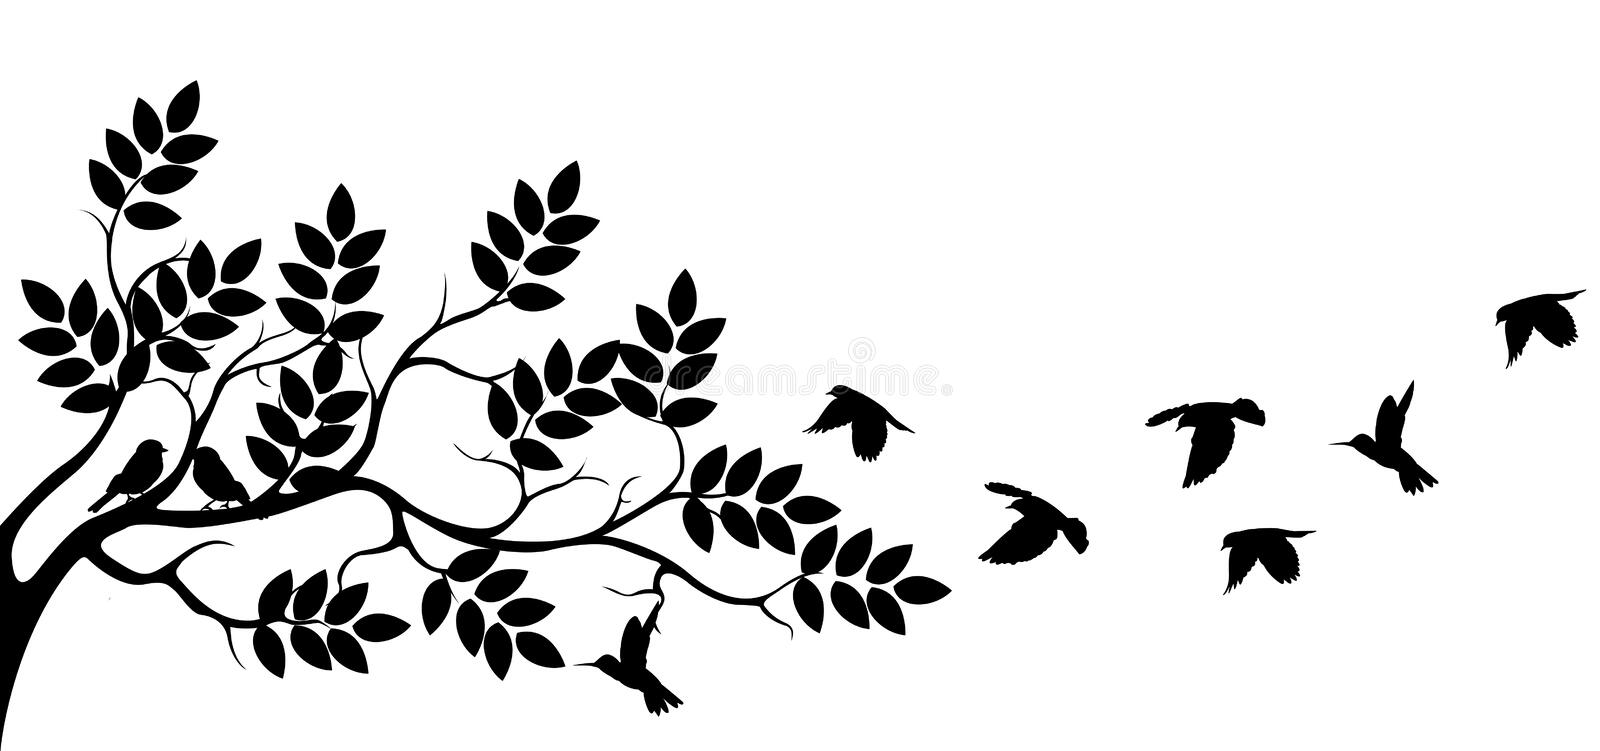 Download Tree Silhouette With Bird Flying Stock Illustration - Image: 27618383